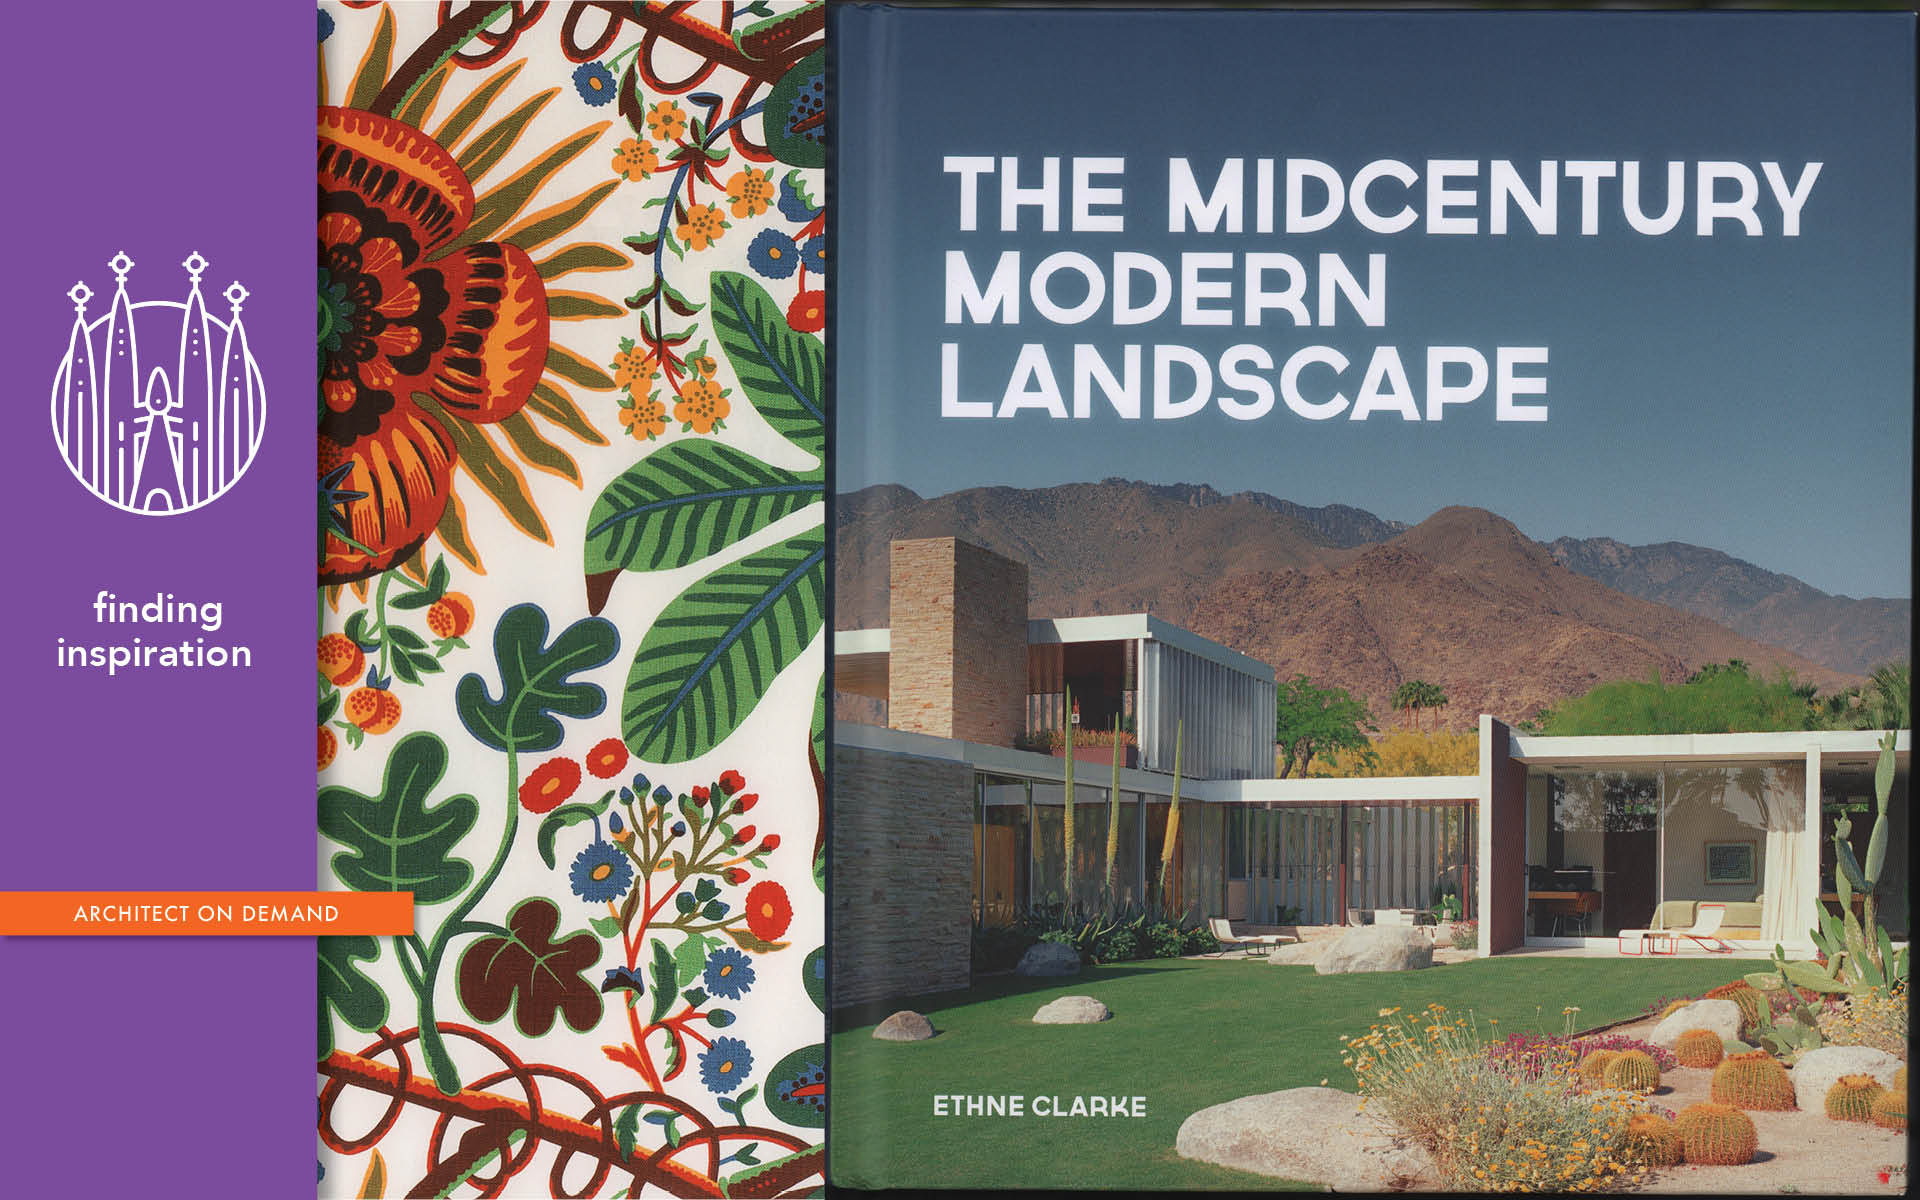 midcentury modern, landscape, architect-on-demand, advice-without-strings